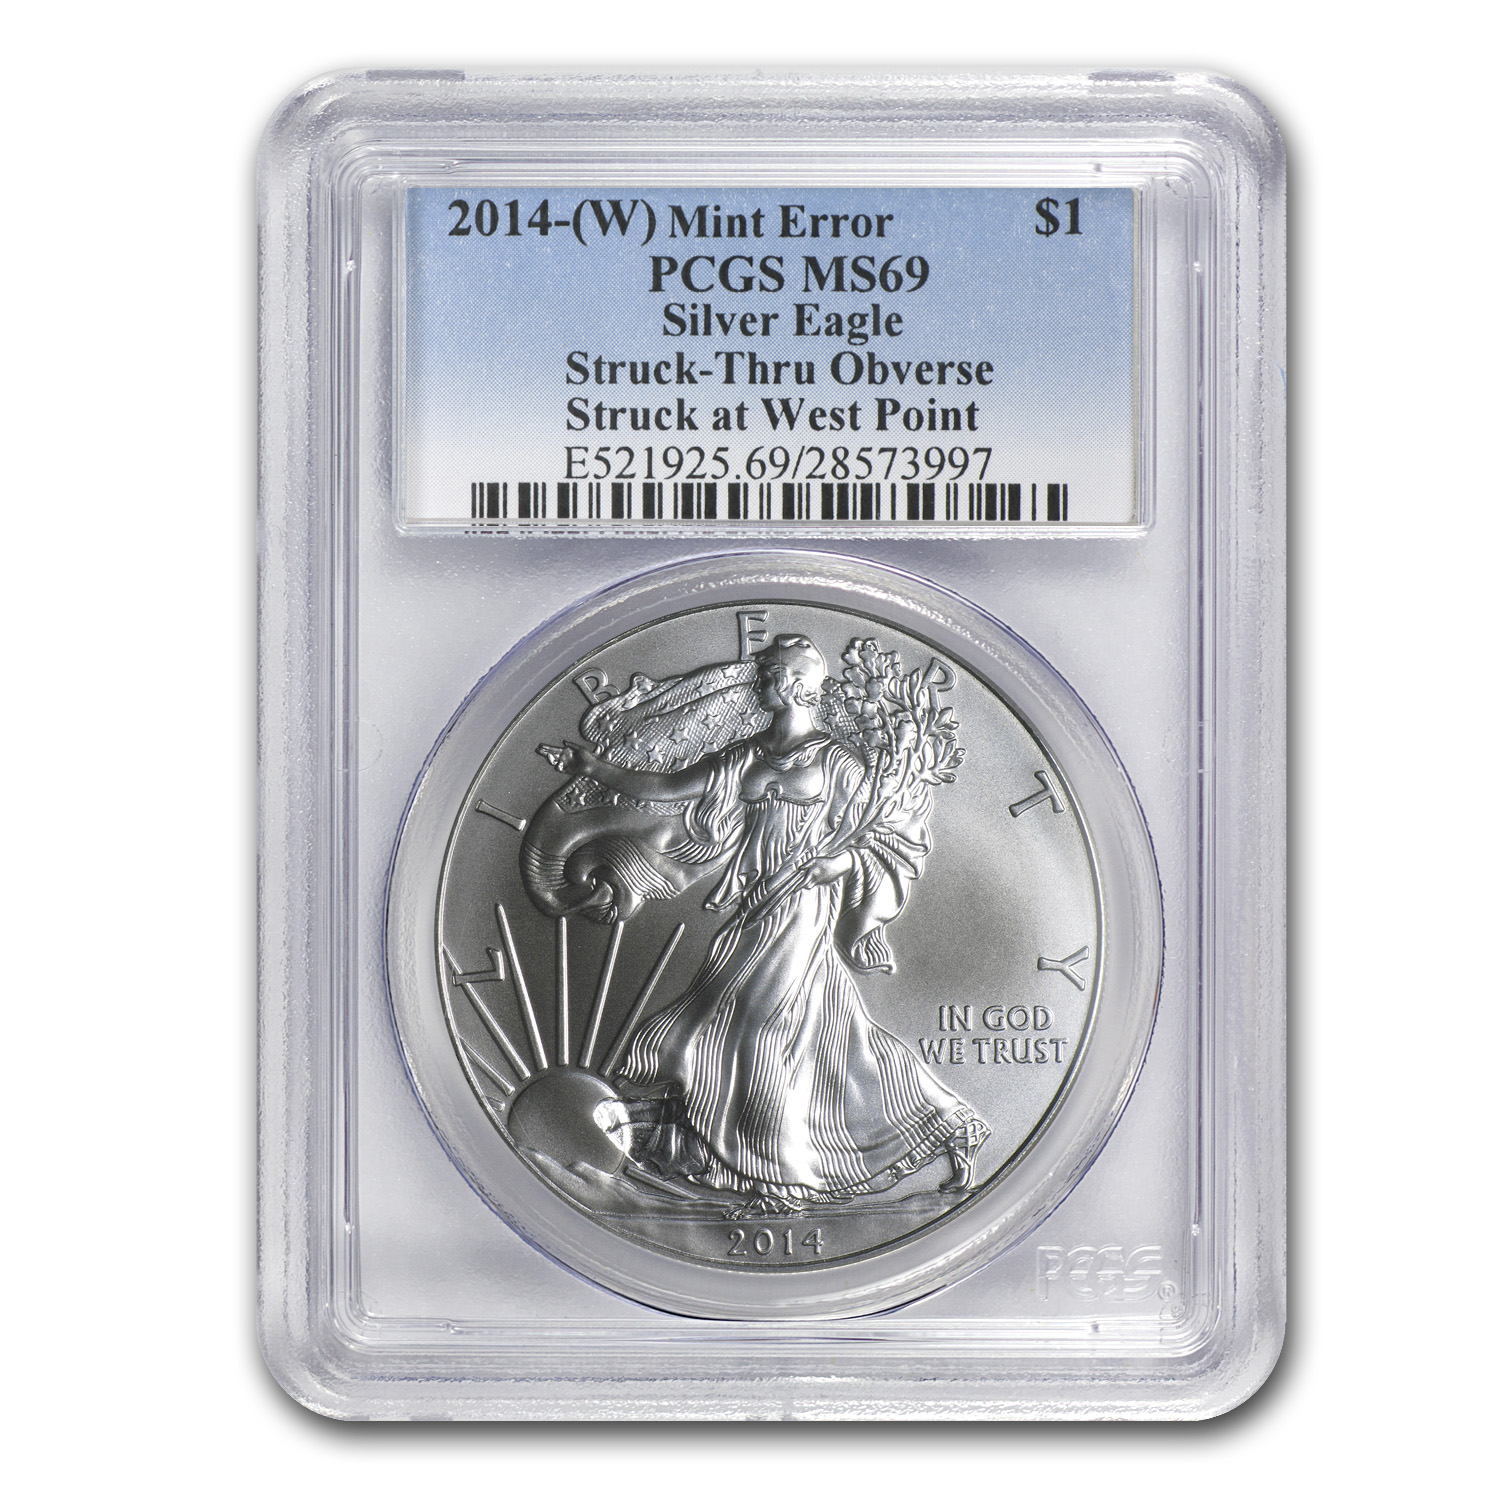 2014 (W) Silver American Eagle MS-69 PCGS (Mint Error)